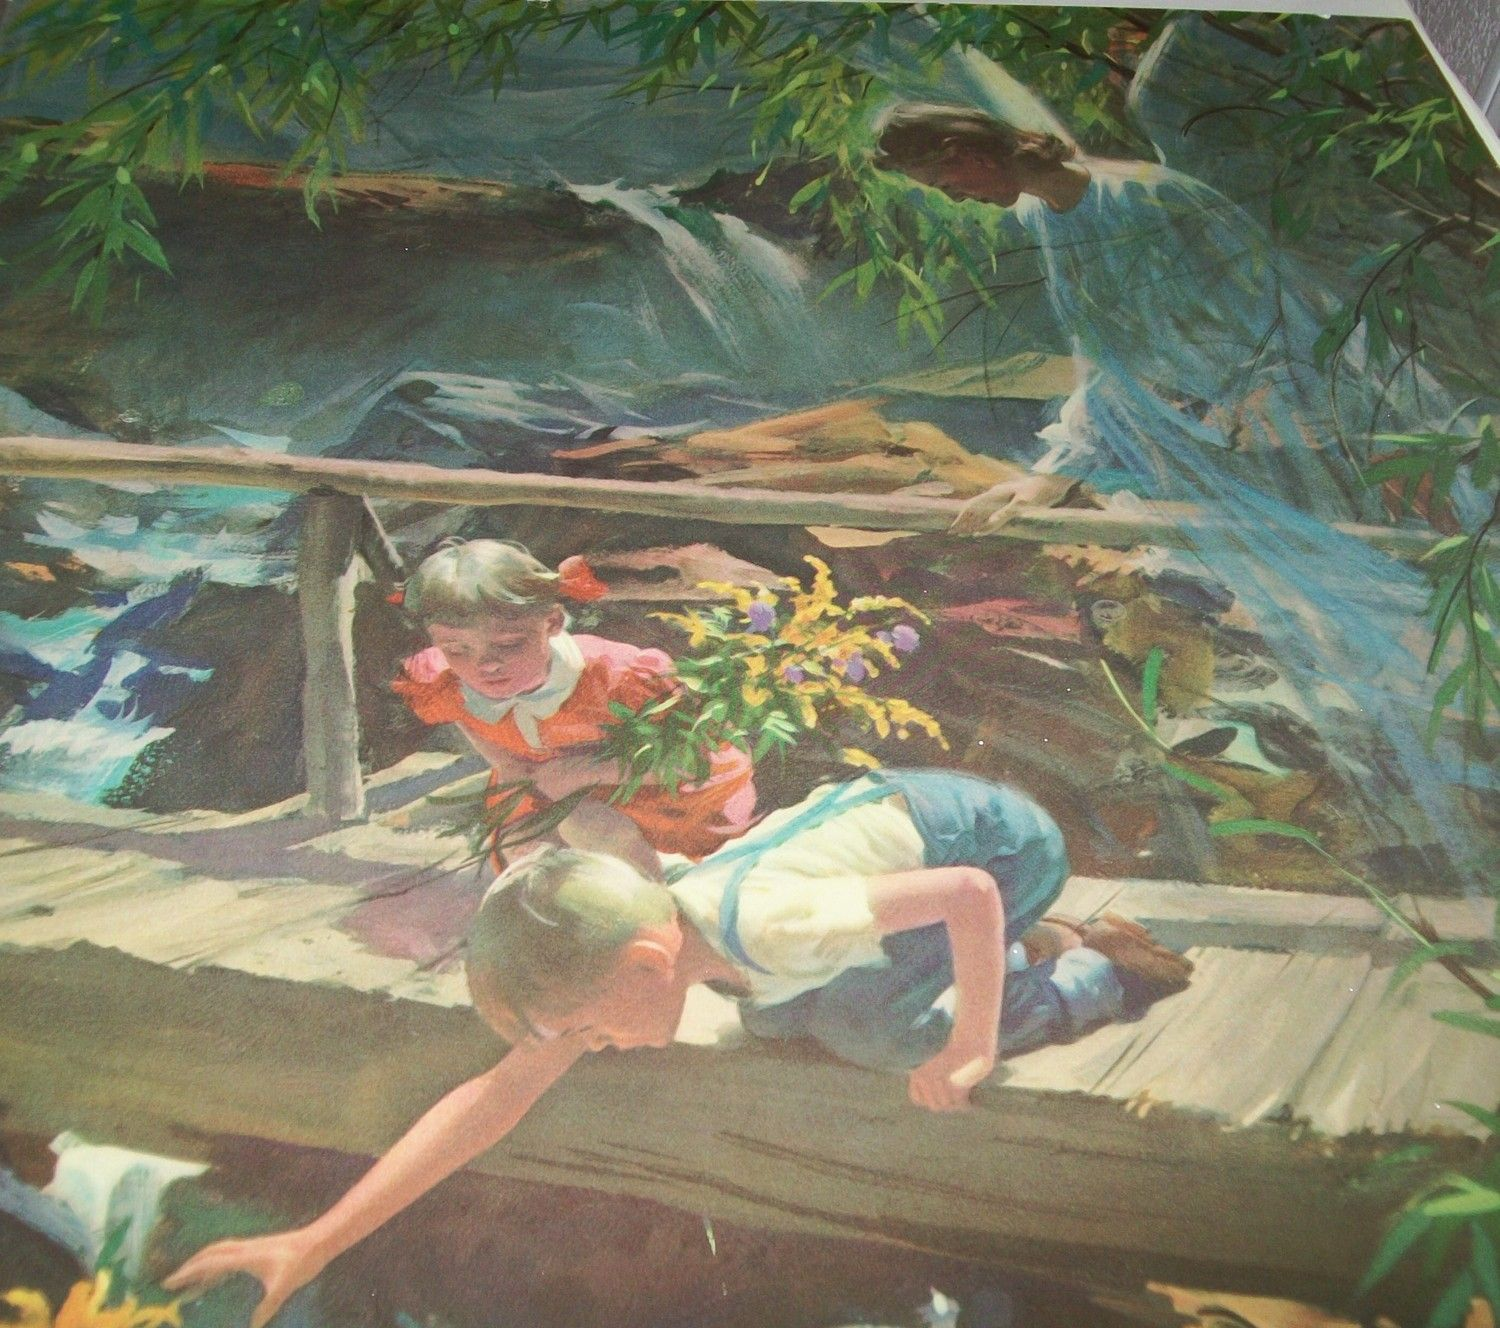 Guardian Angel With Boy And Girl On Bridge Wide View Google Search